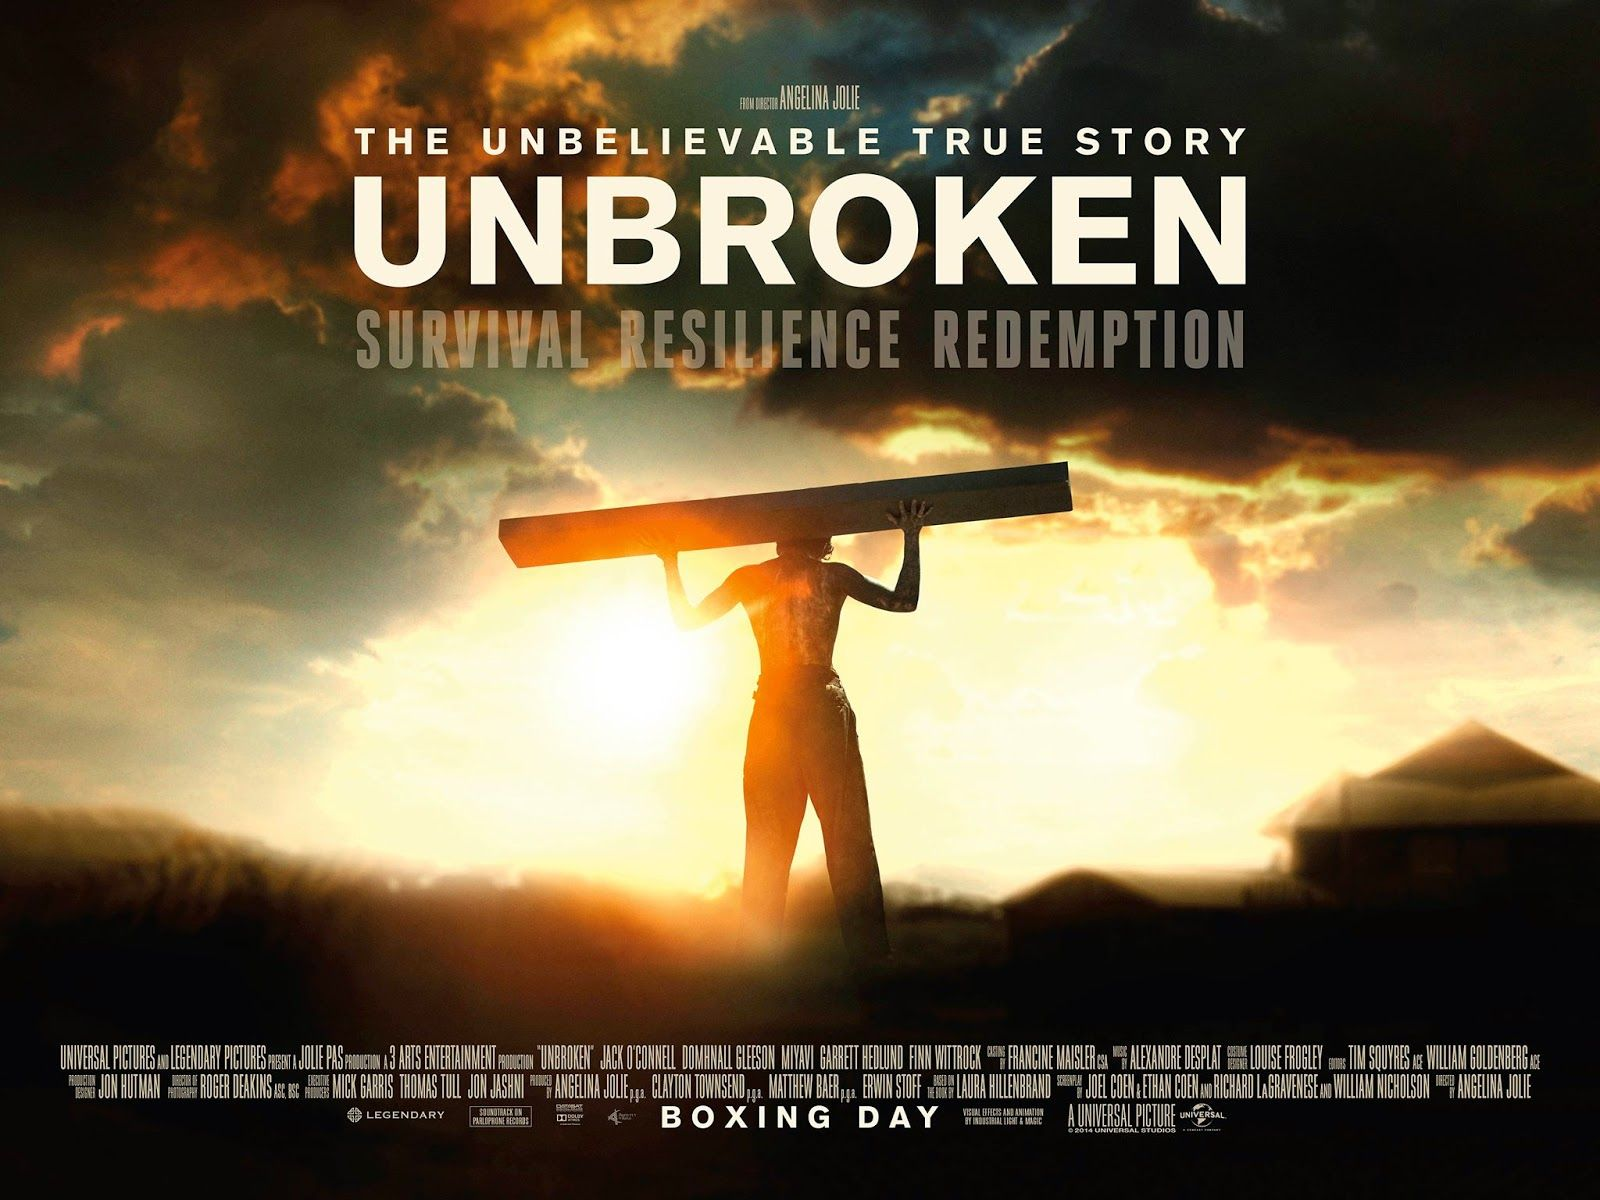 unbroken a world war ii story Unbroken and world war ii memory by robert fleegler angelina jolie's solid  film unbroken, based on laura hillenbrand's book of the same title, depicts.